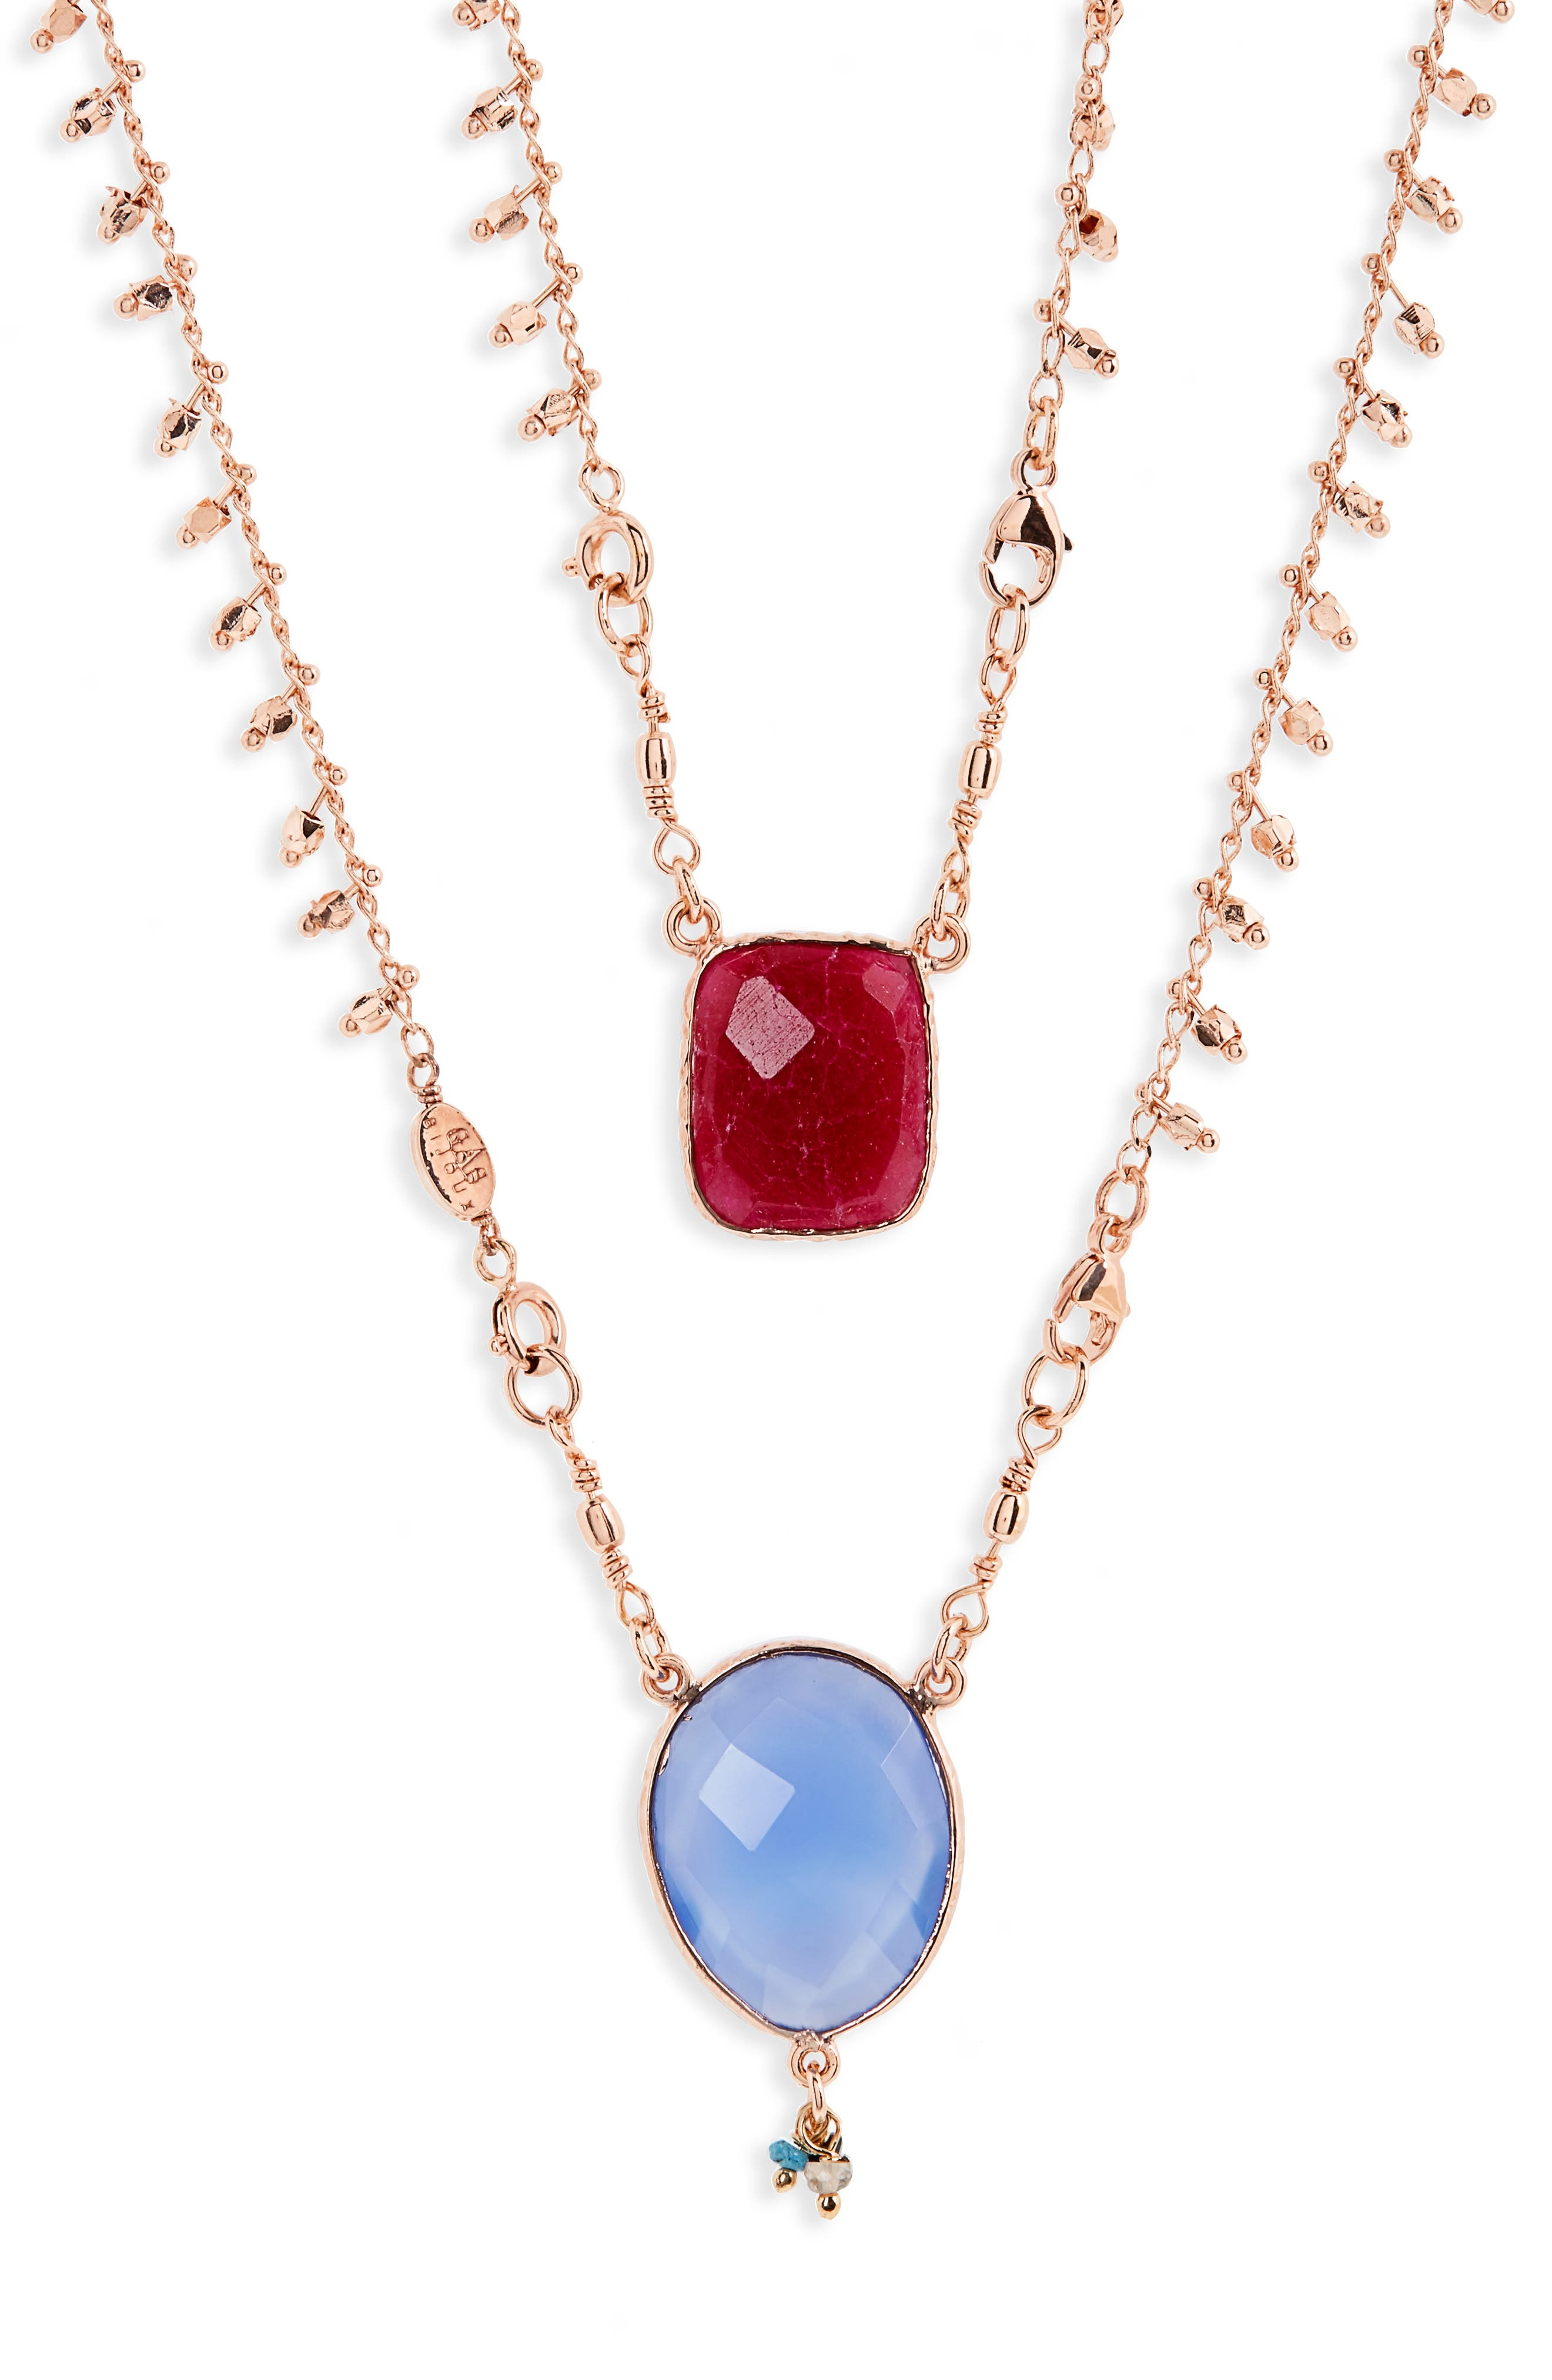 Main Image - Gas Bijoux Scapulaire Convertible Semiprecious Stone Necklace